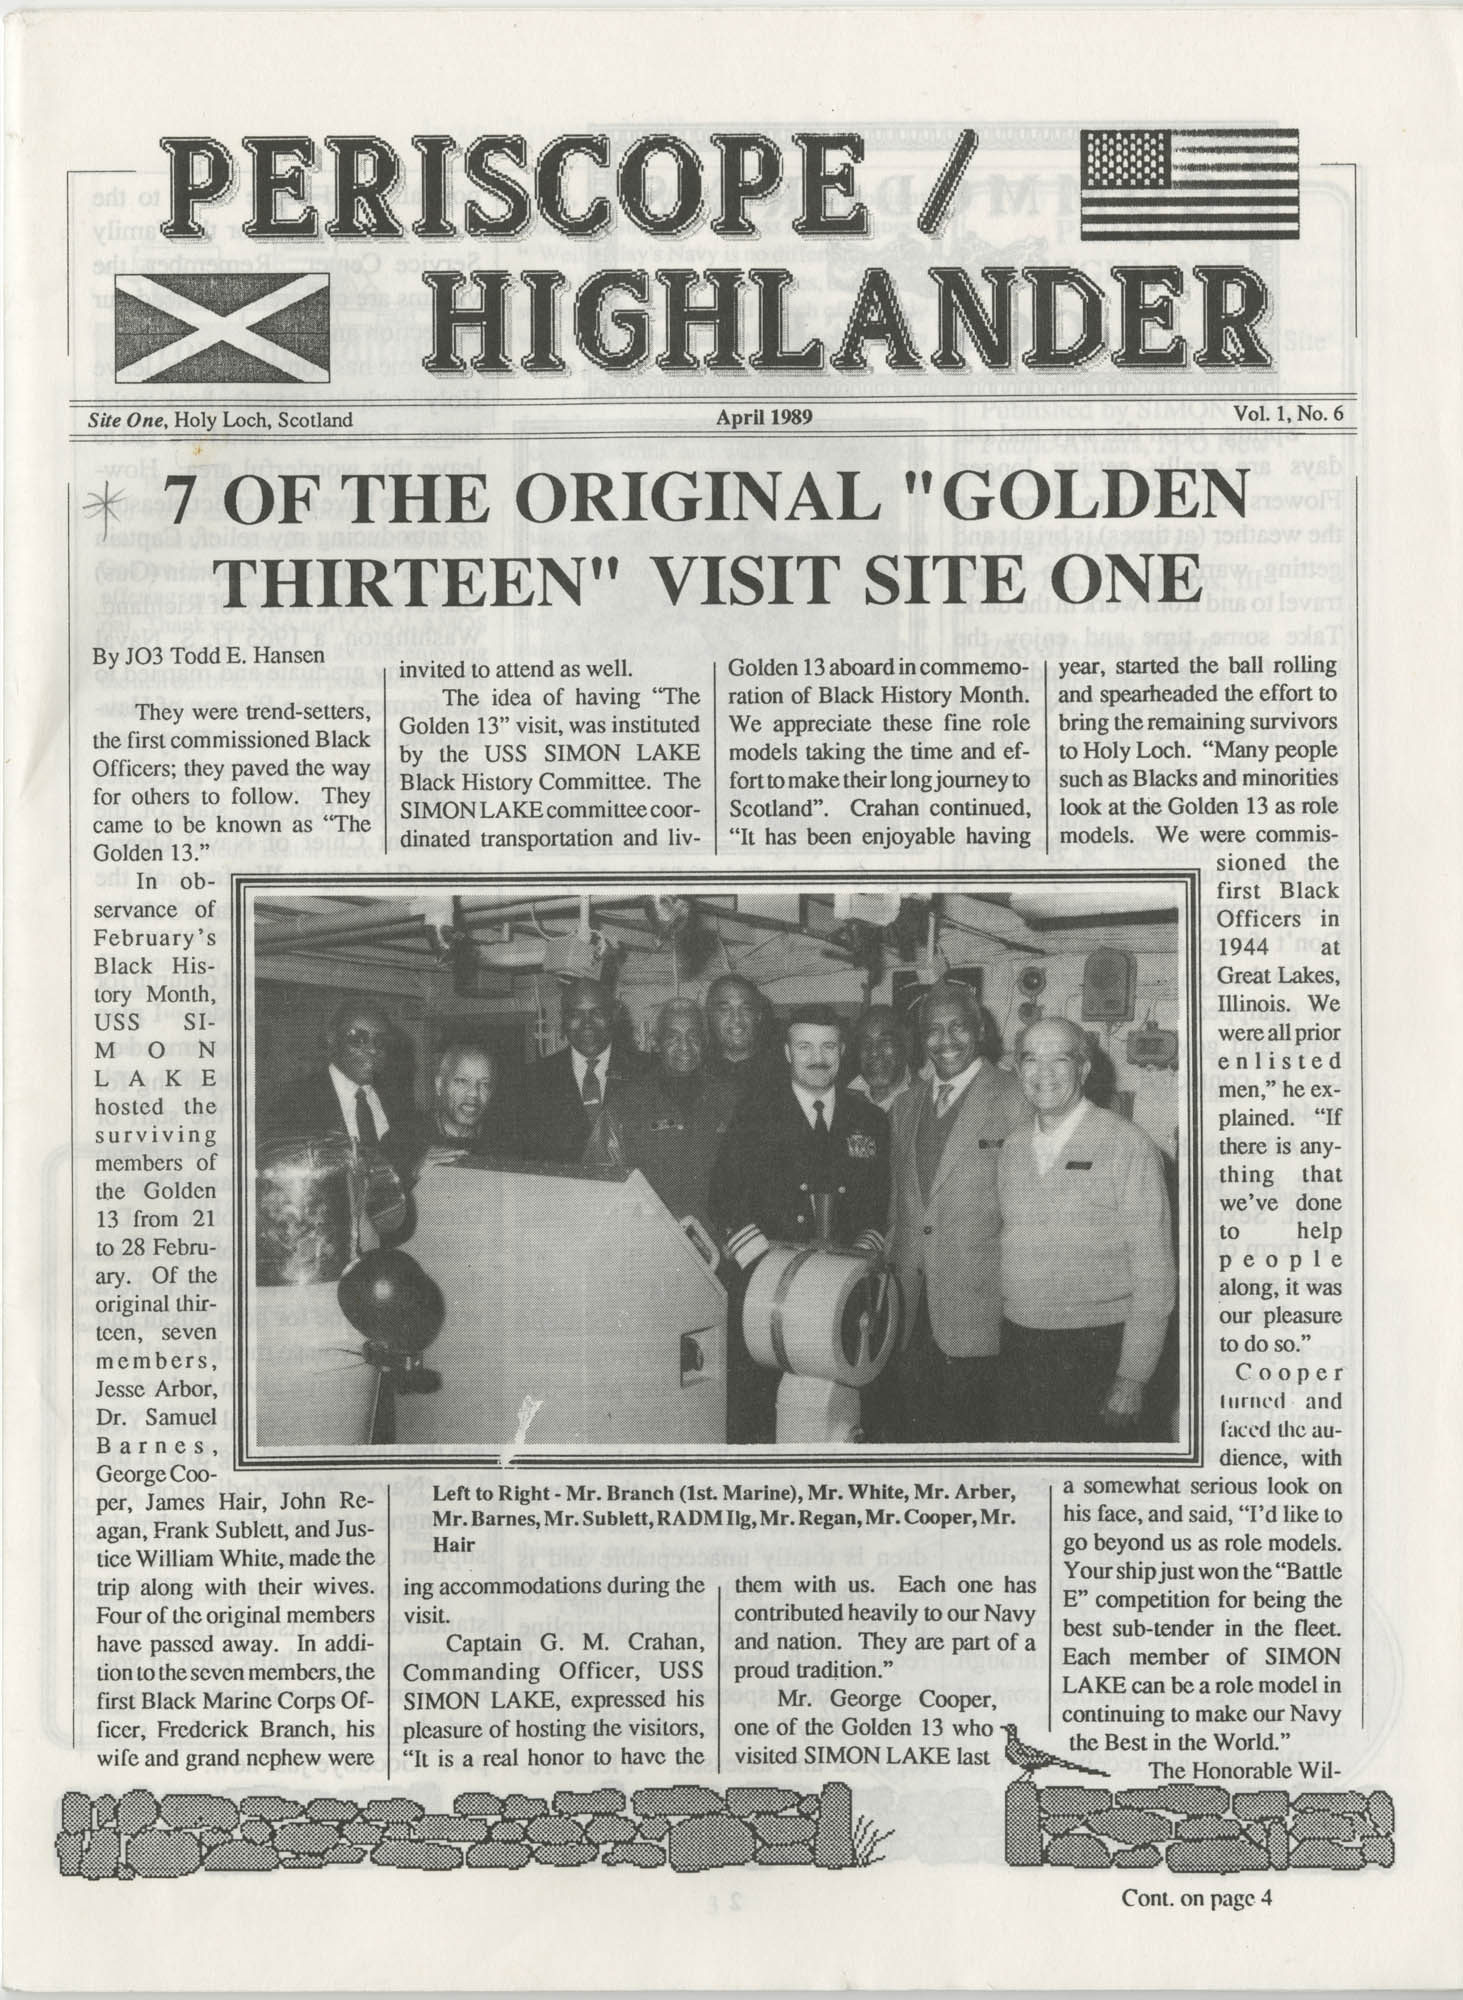 Periscope/Highlander, Vol. 1 No. 6, April 1989